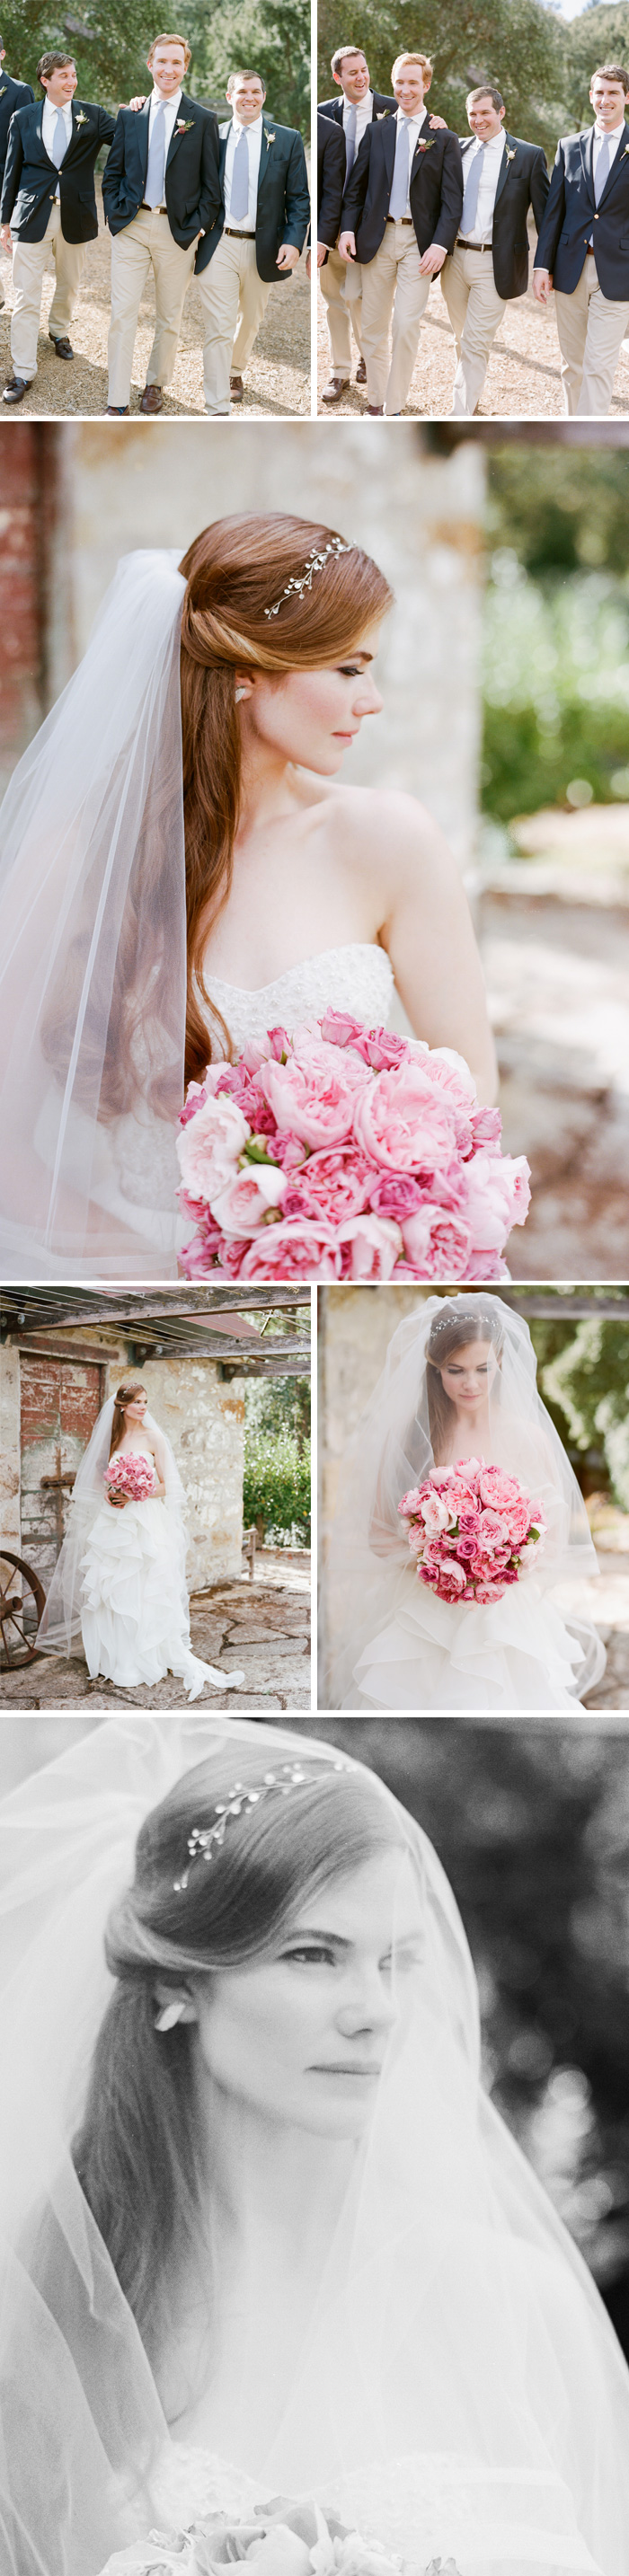 Sylvie-Gil-Film-Wedding-Photography-Napa-pink bouquet-wedding gown - beige and blue wedding suit- veil- destination-vineyard